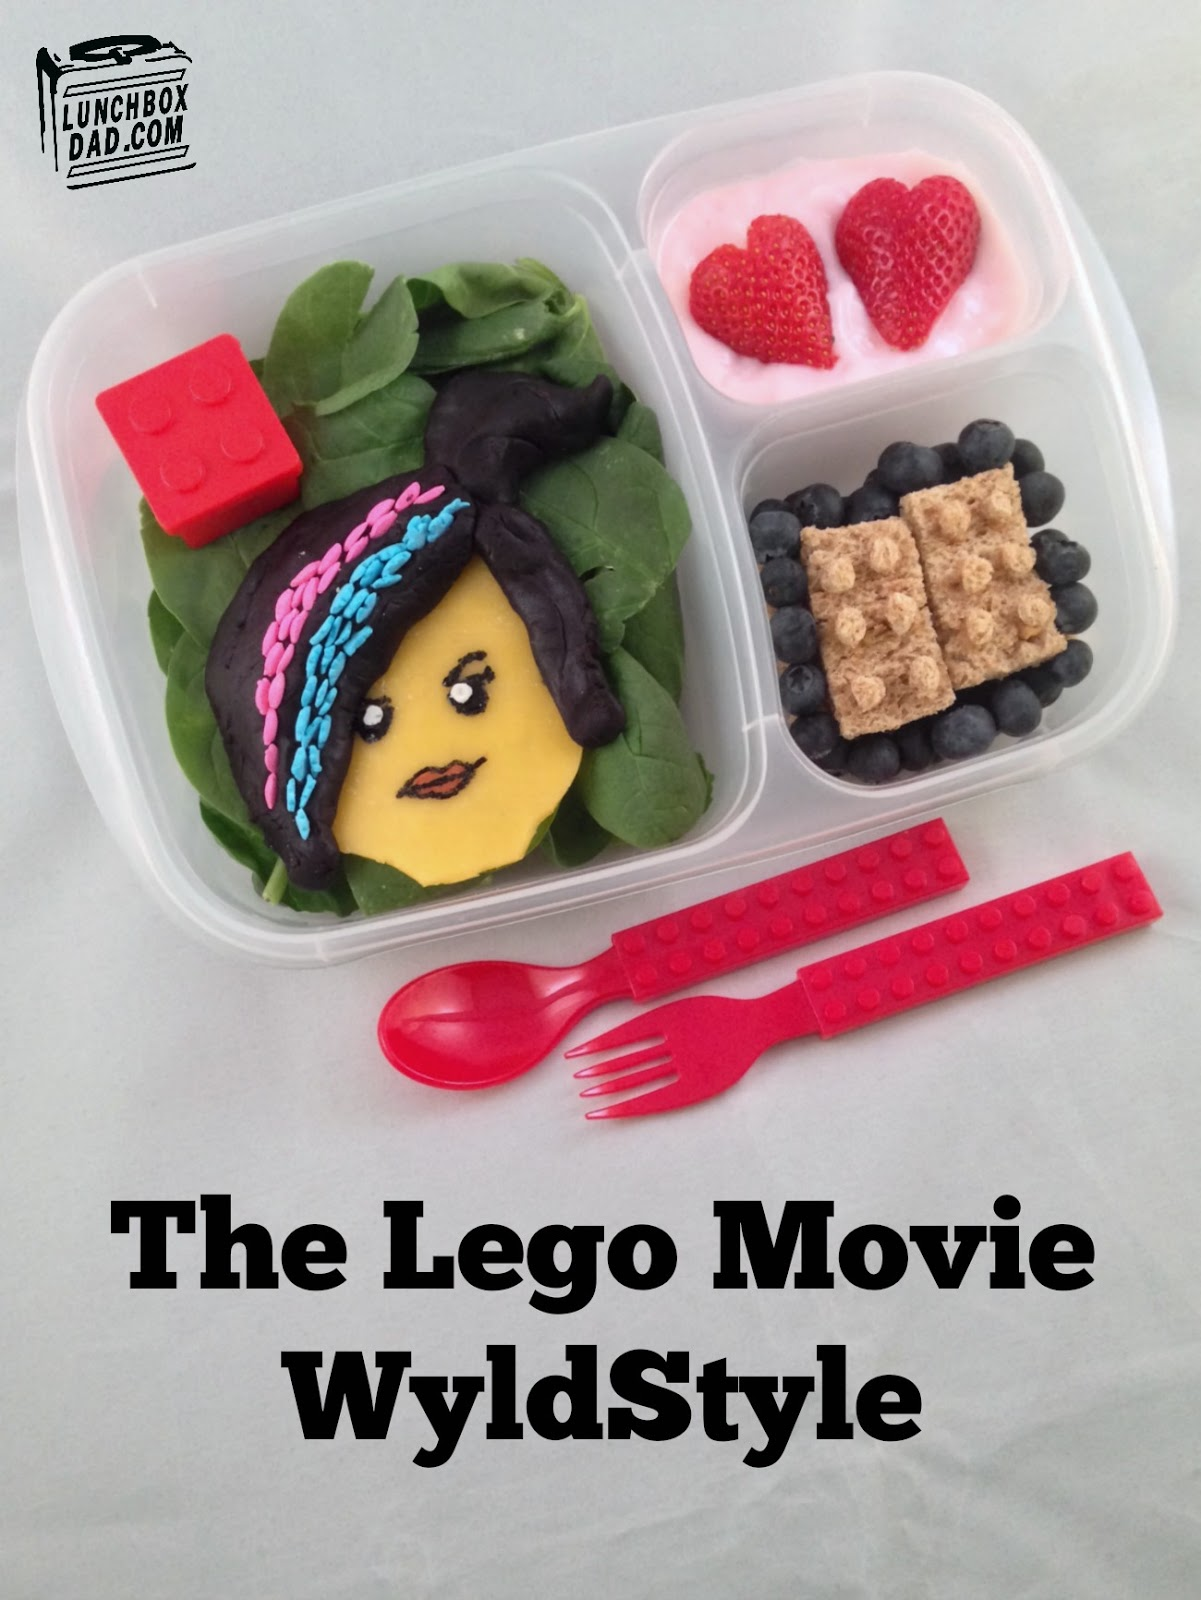 The Lego Movie Wyldstyle lunch